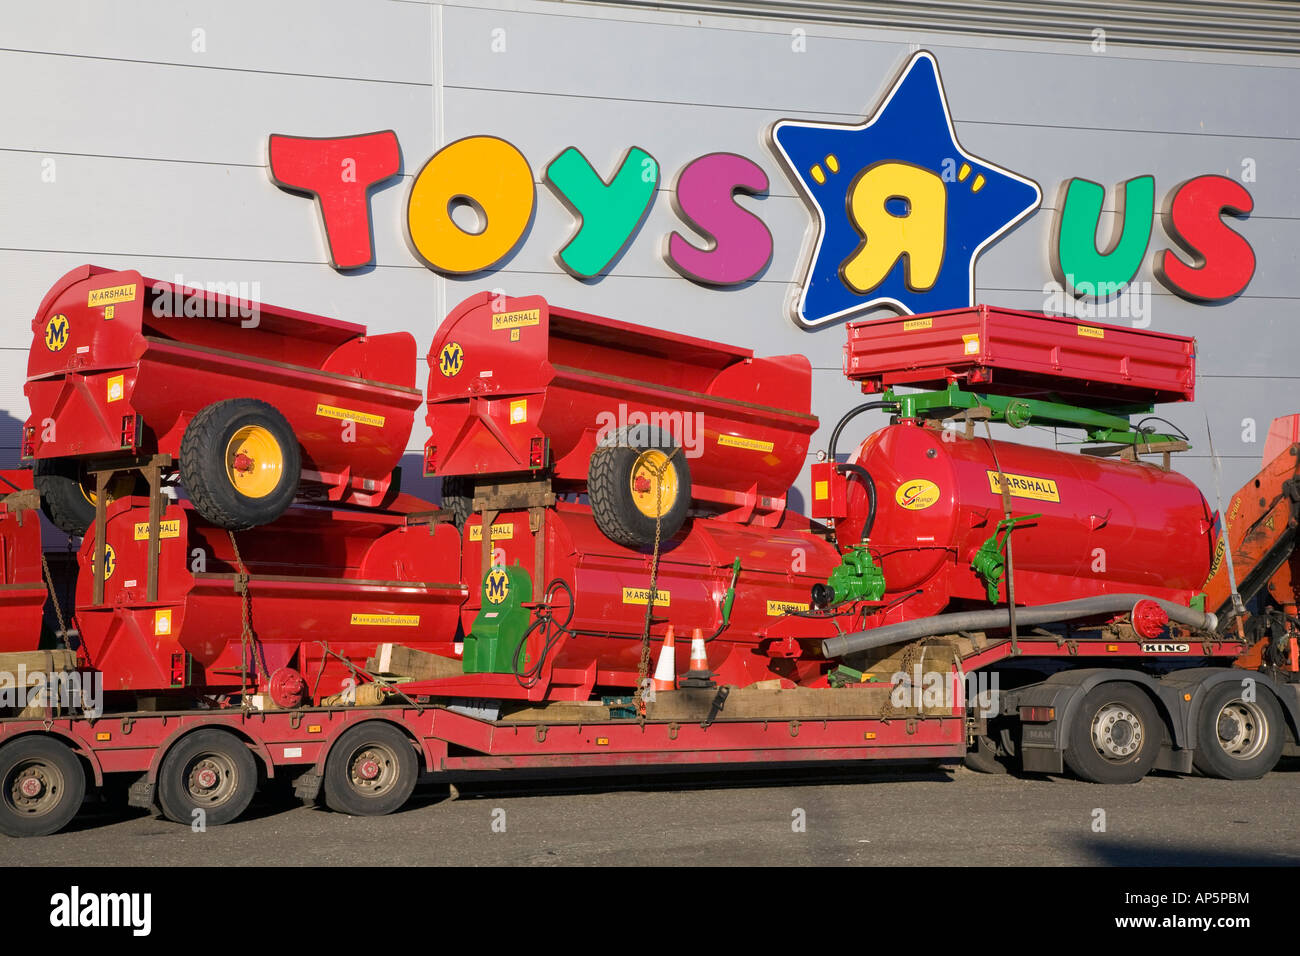 Toys R Us Dundee city store warehouse - Stock Image